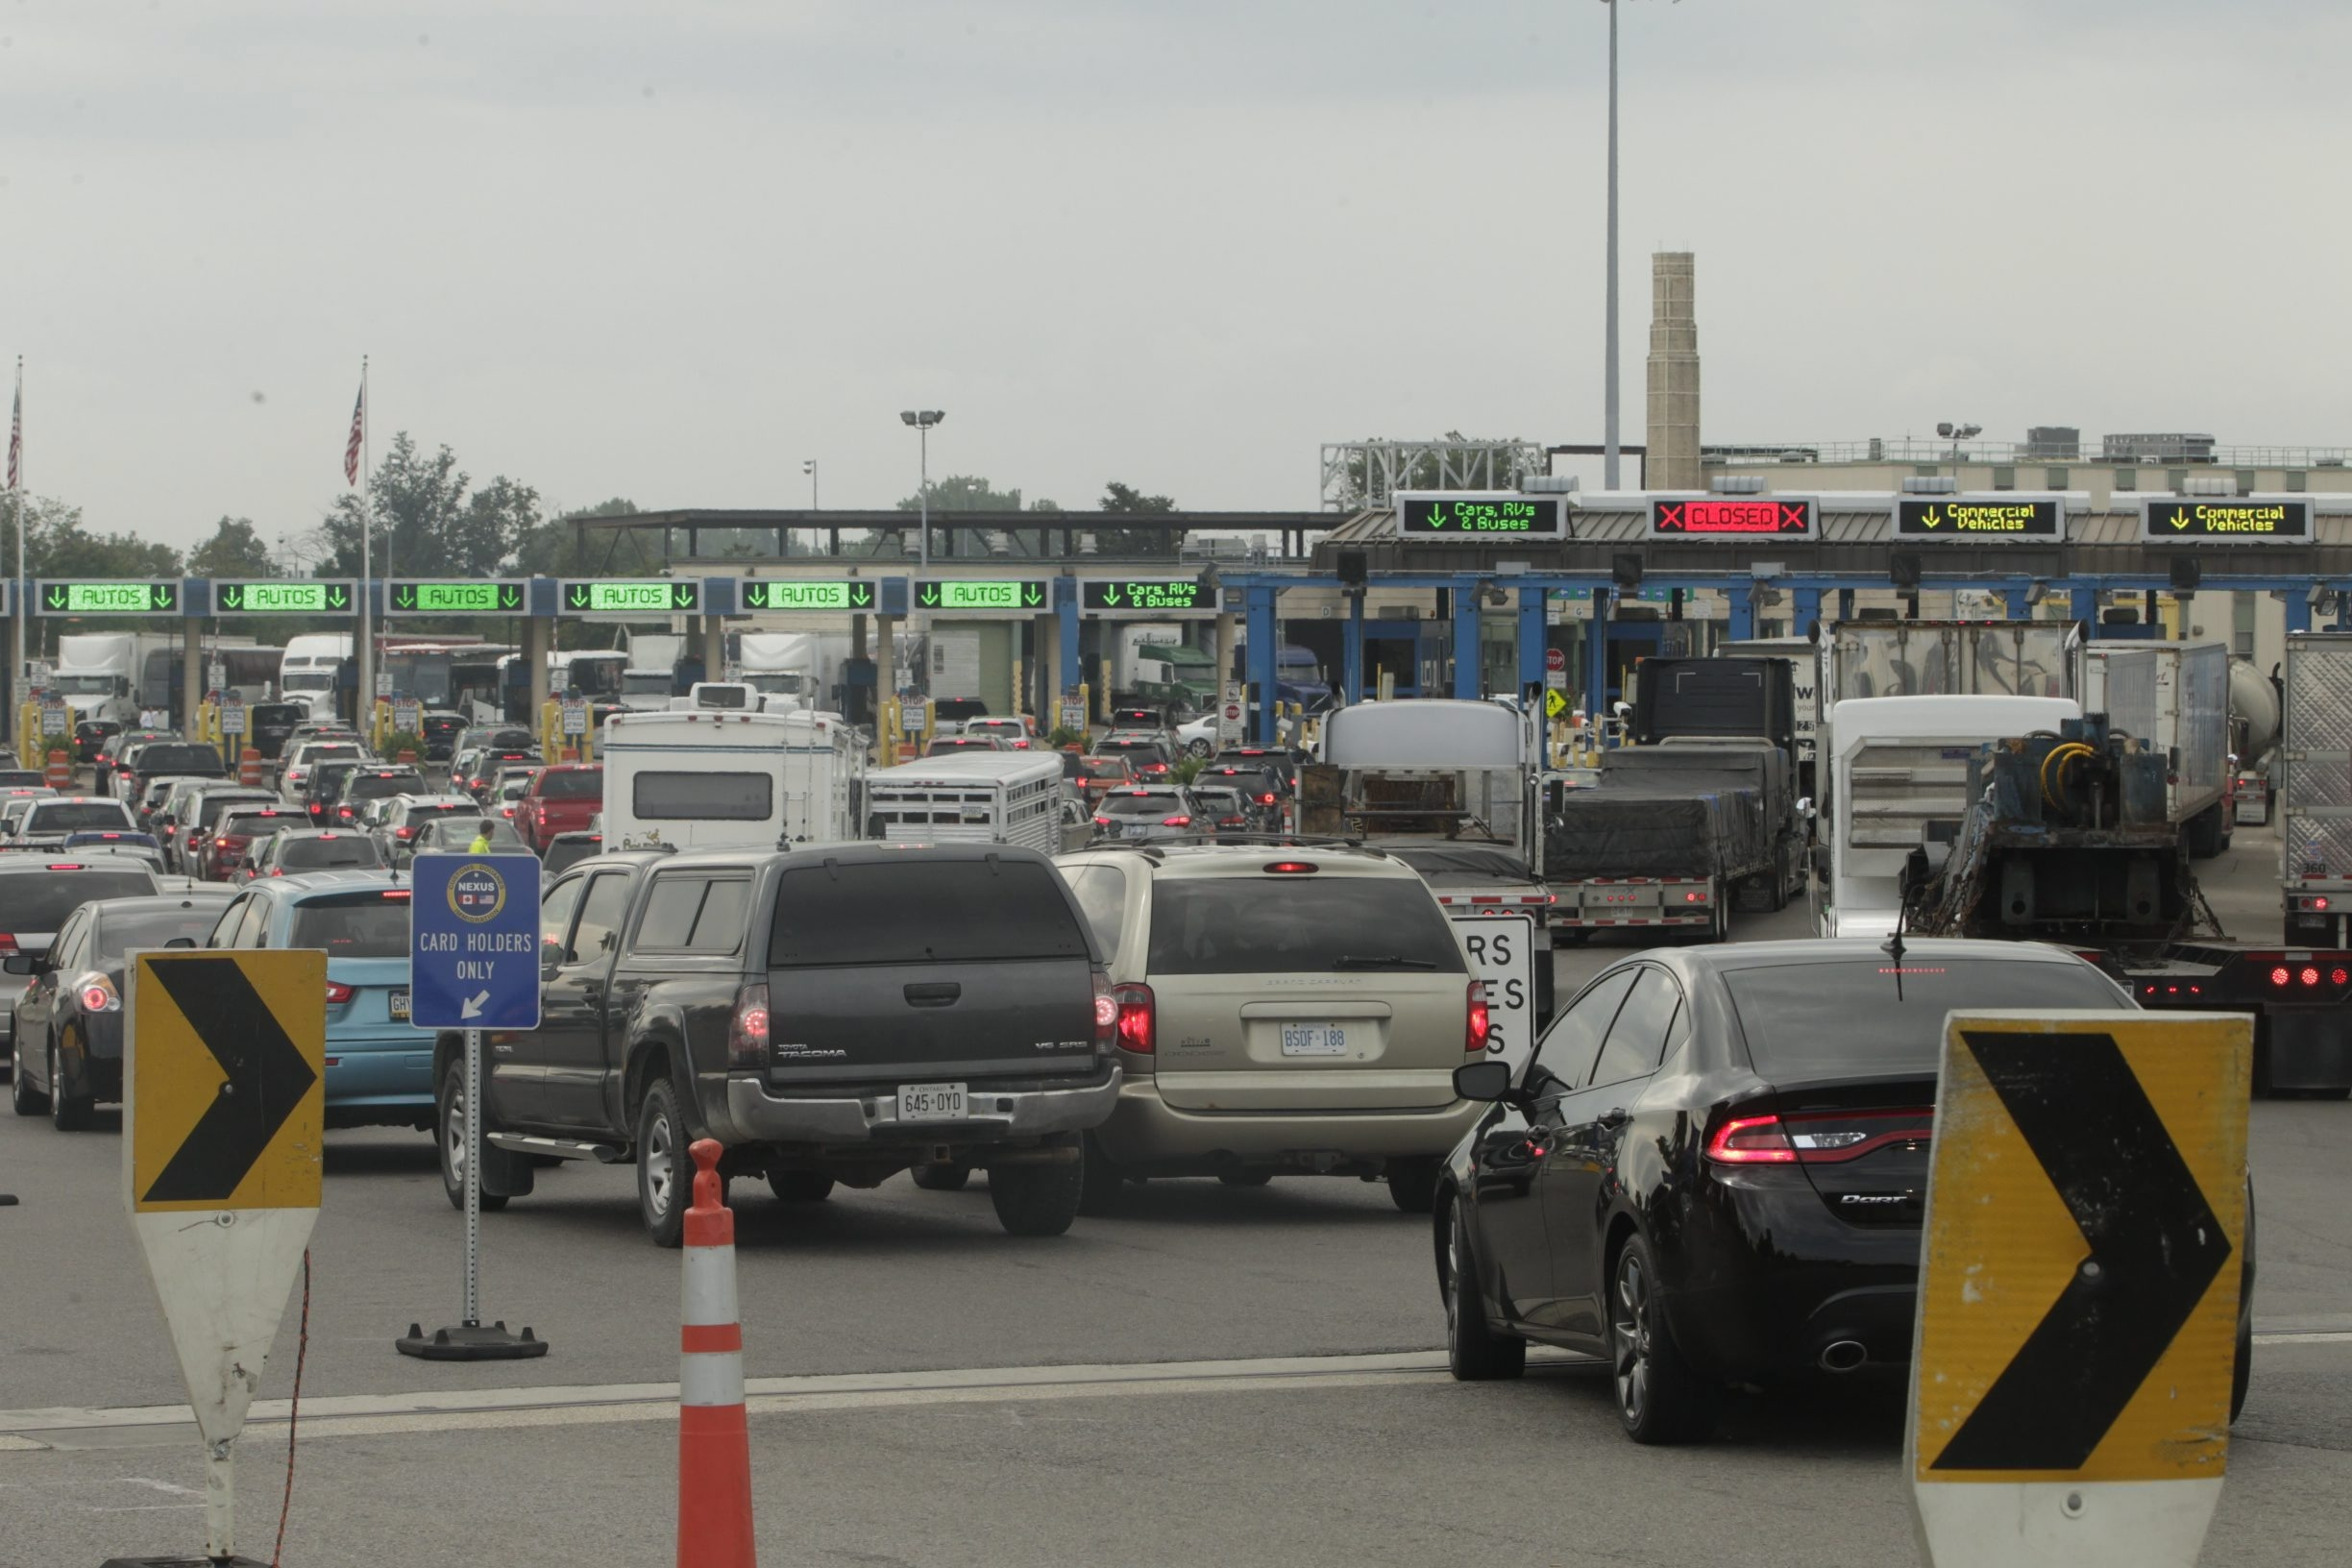 The lines of traffic waiting to enter the U.S. from Canada at the Peace Bridge in Buffalo on Friday, Aug. 22, 2014. (John Hickey/Buffalo News)